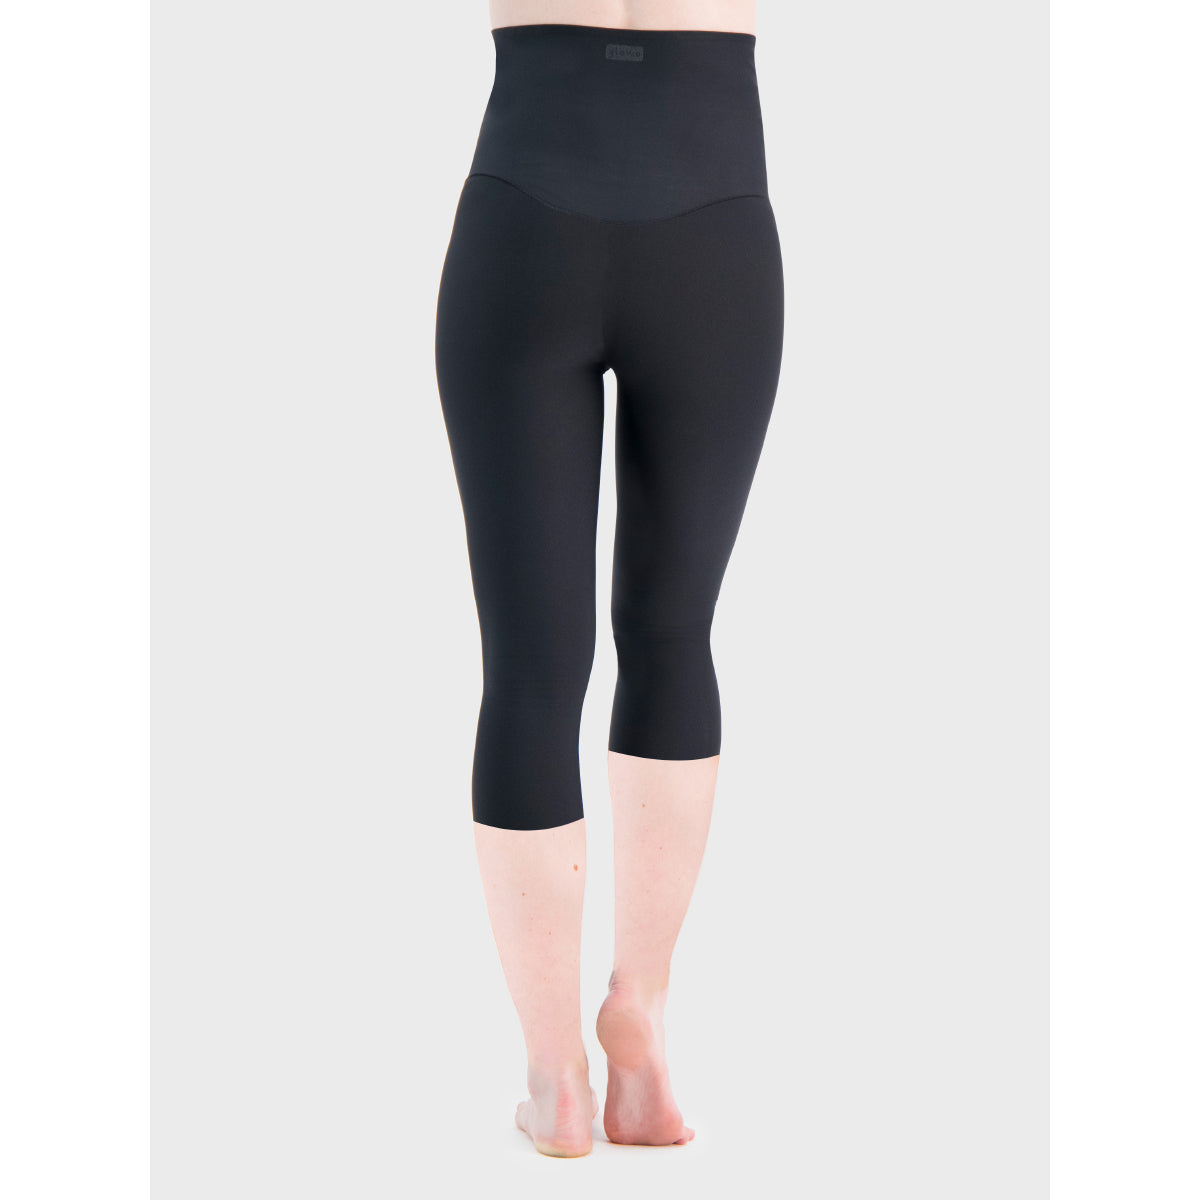 The GLOWE Maternity Legging Capri 19